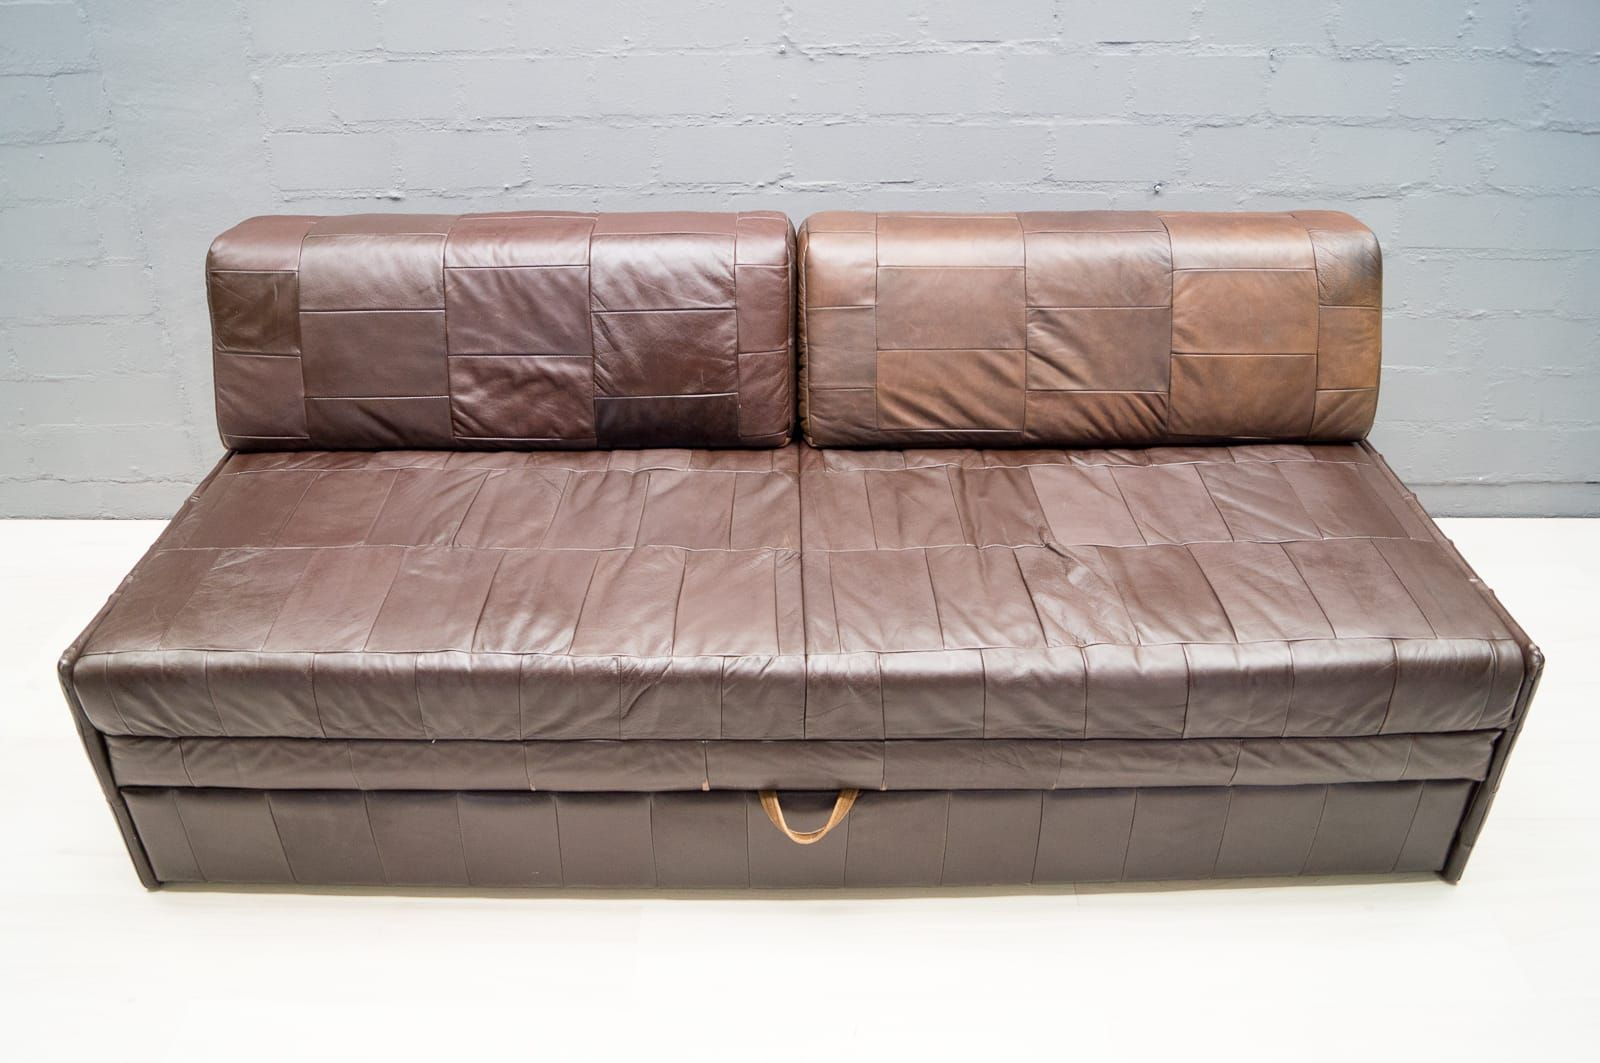 Vintage Patchwork Leather Sofa 1960s For Sale At Pamono